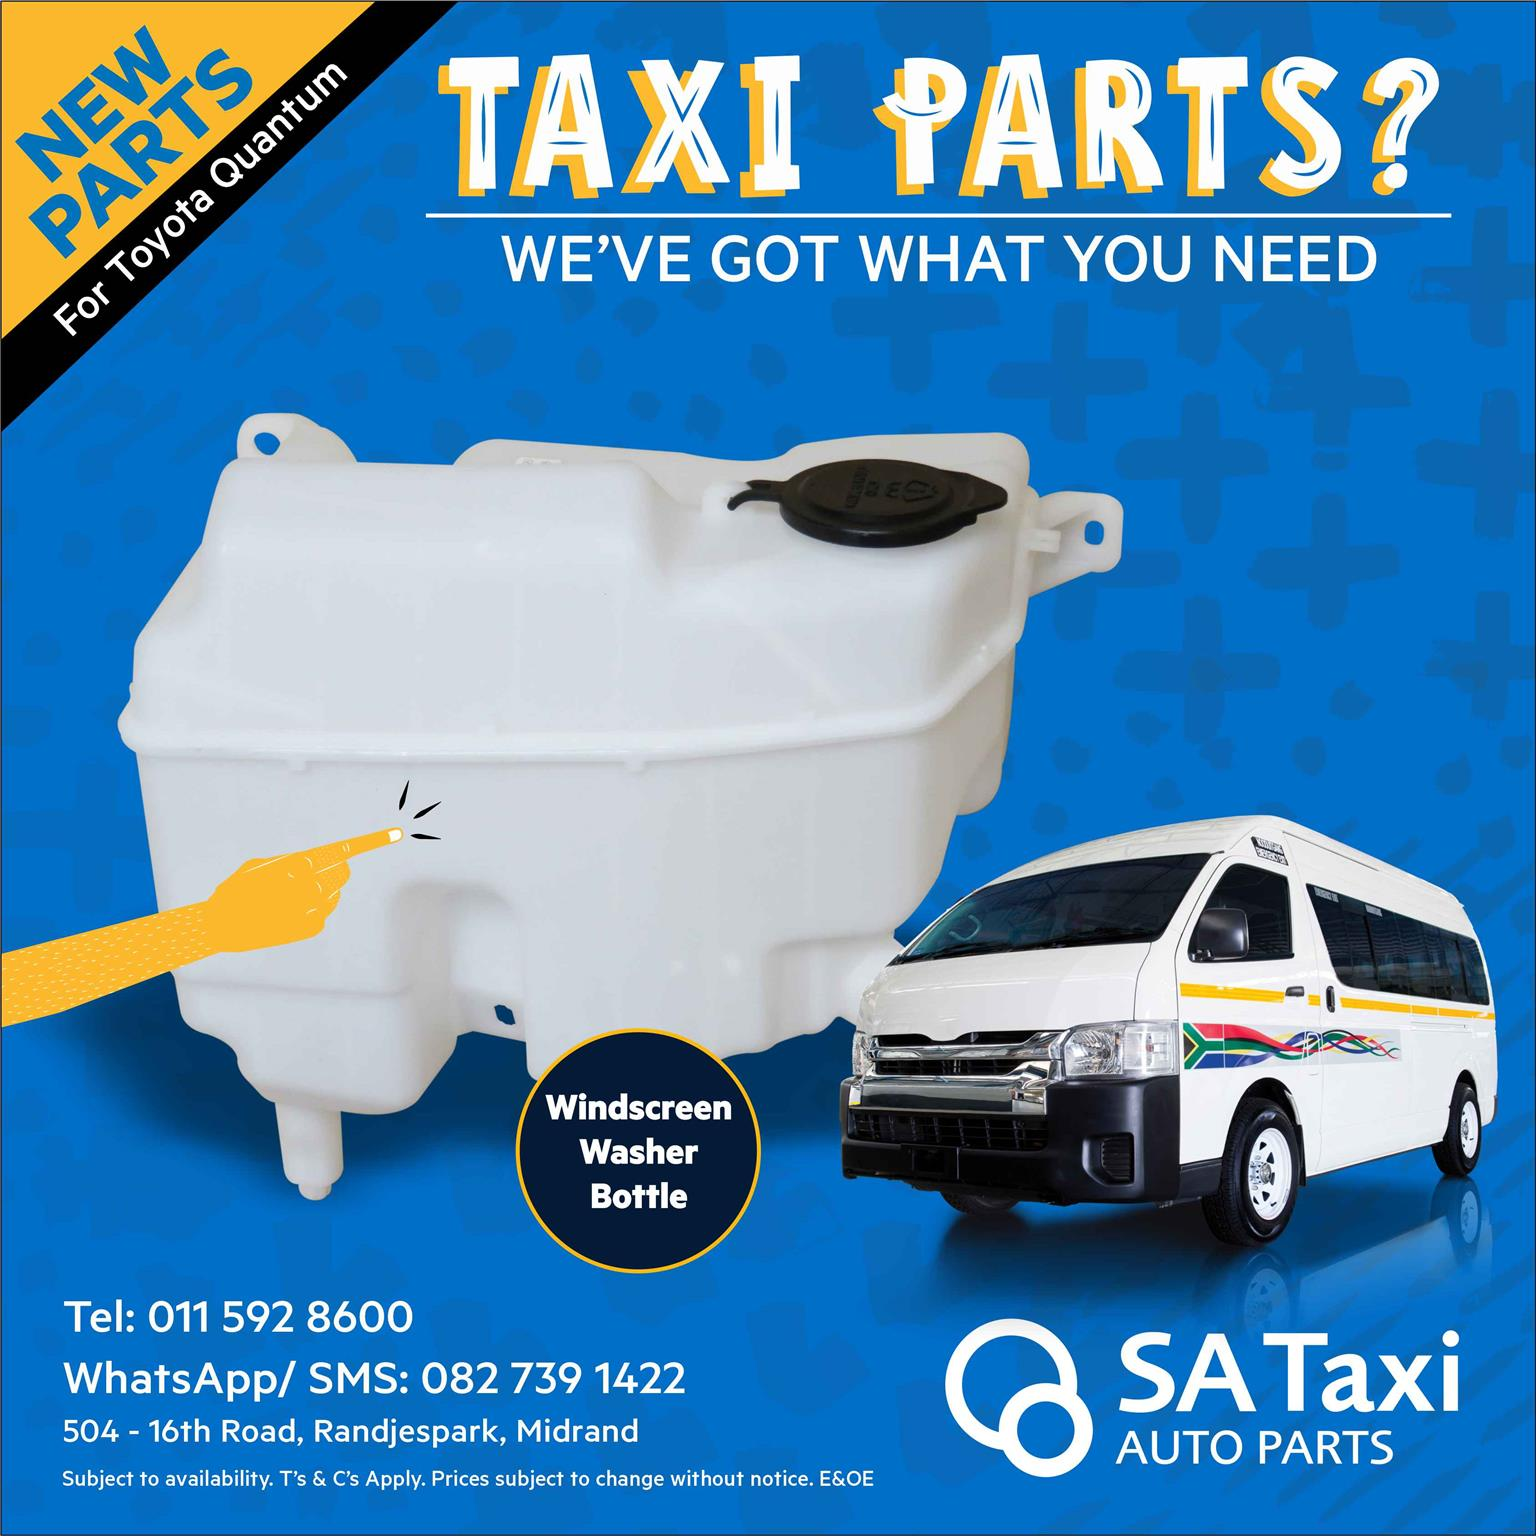 New Windscreen Washer Bottle suitable for Toyota Quantum - SA Taxi Auto Parts quality spares